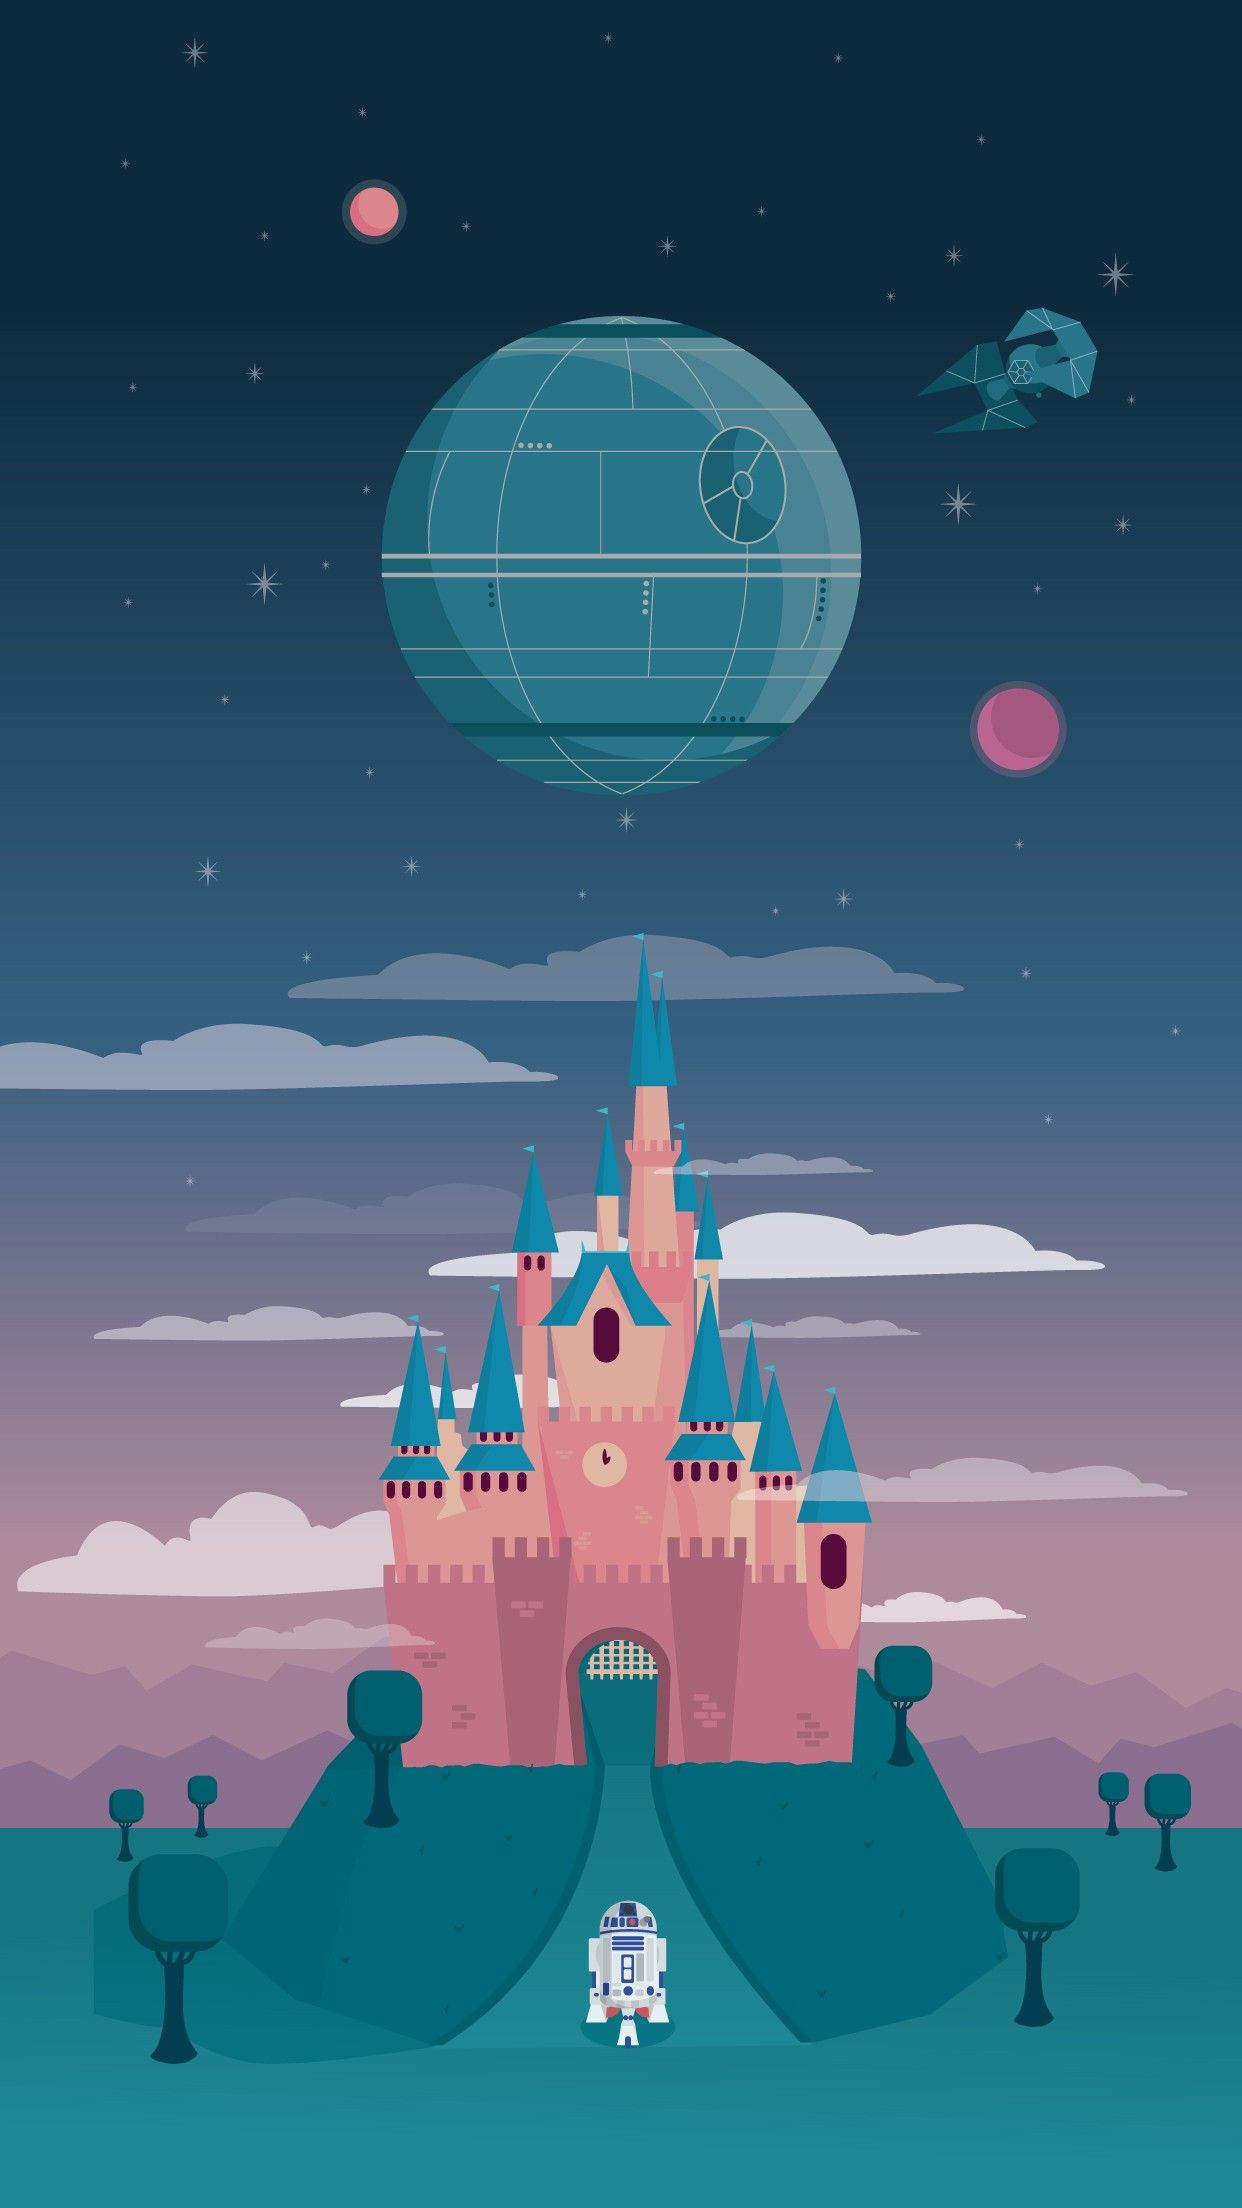 Wallpaper Iphone 6 Disney